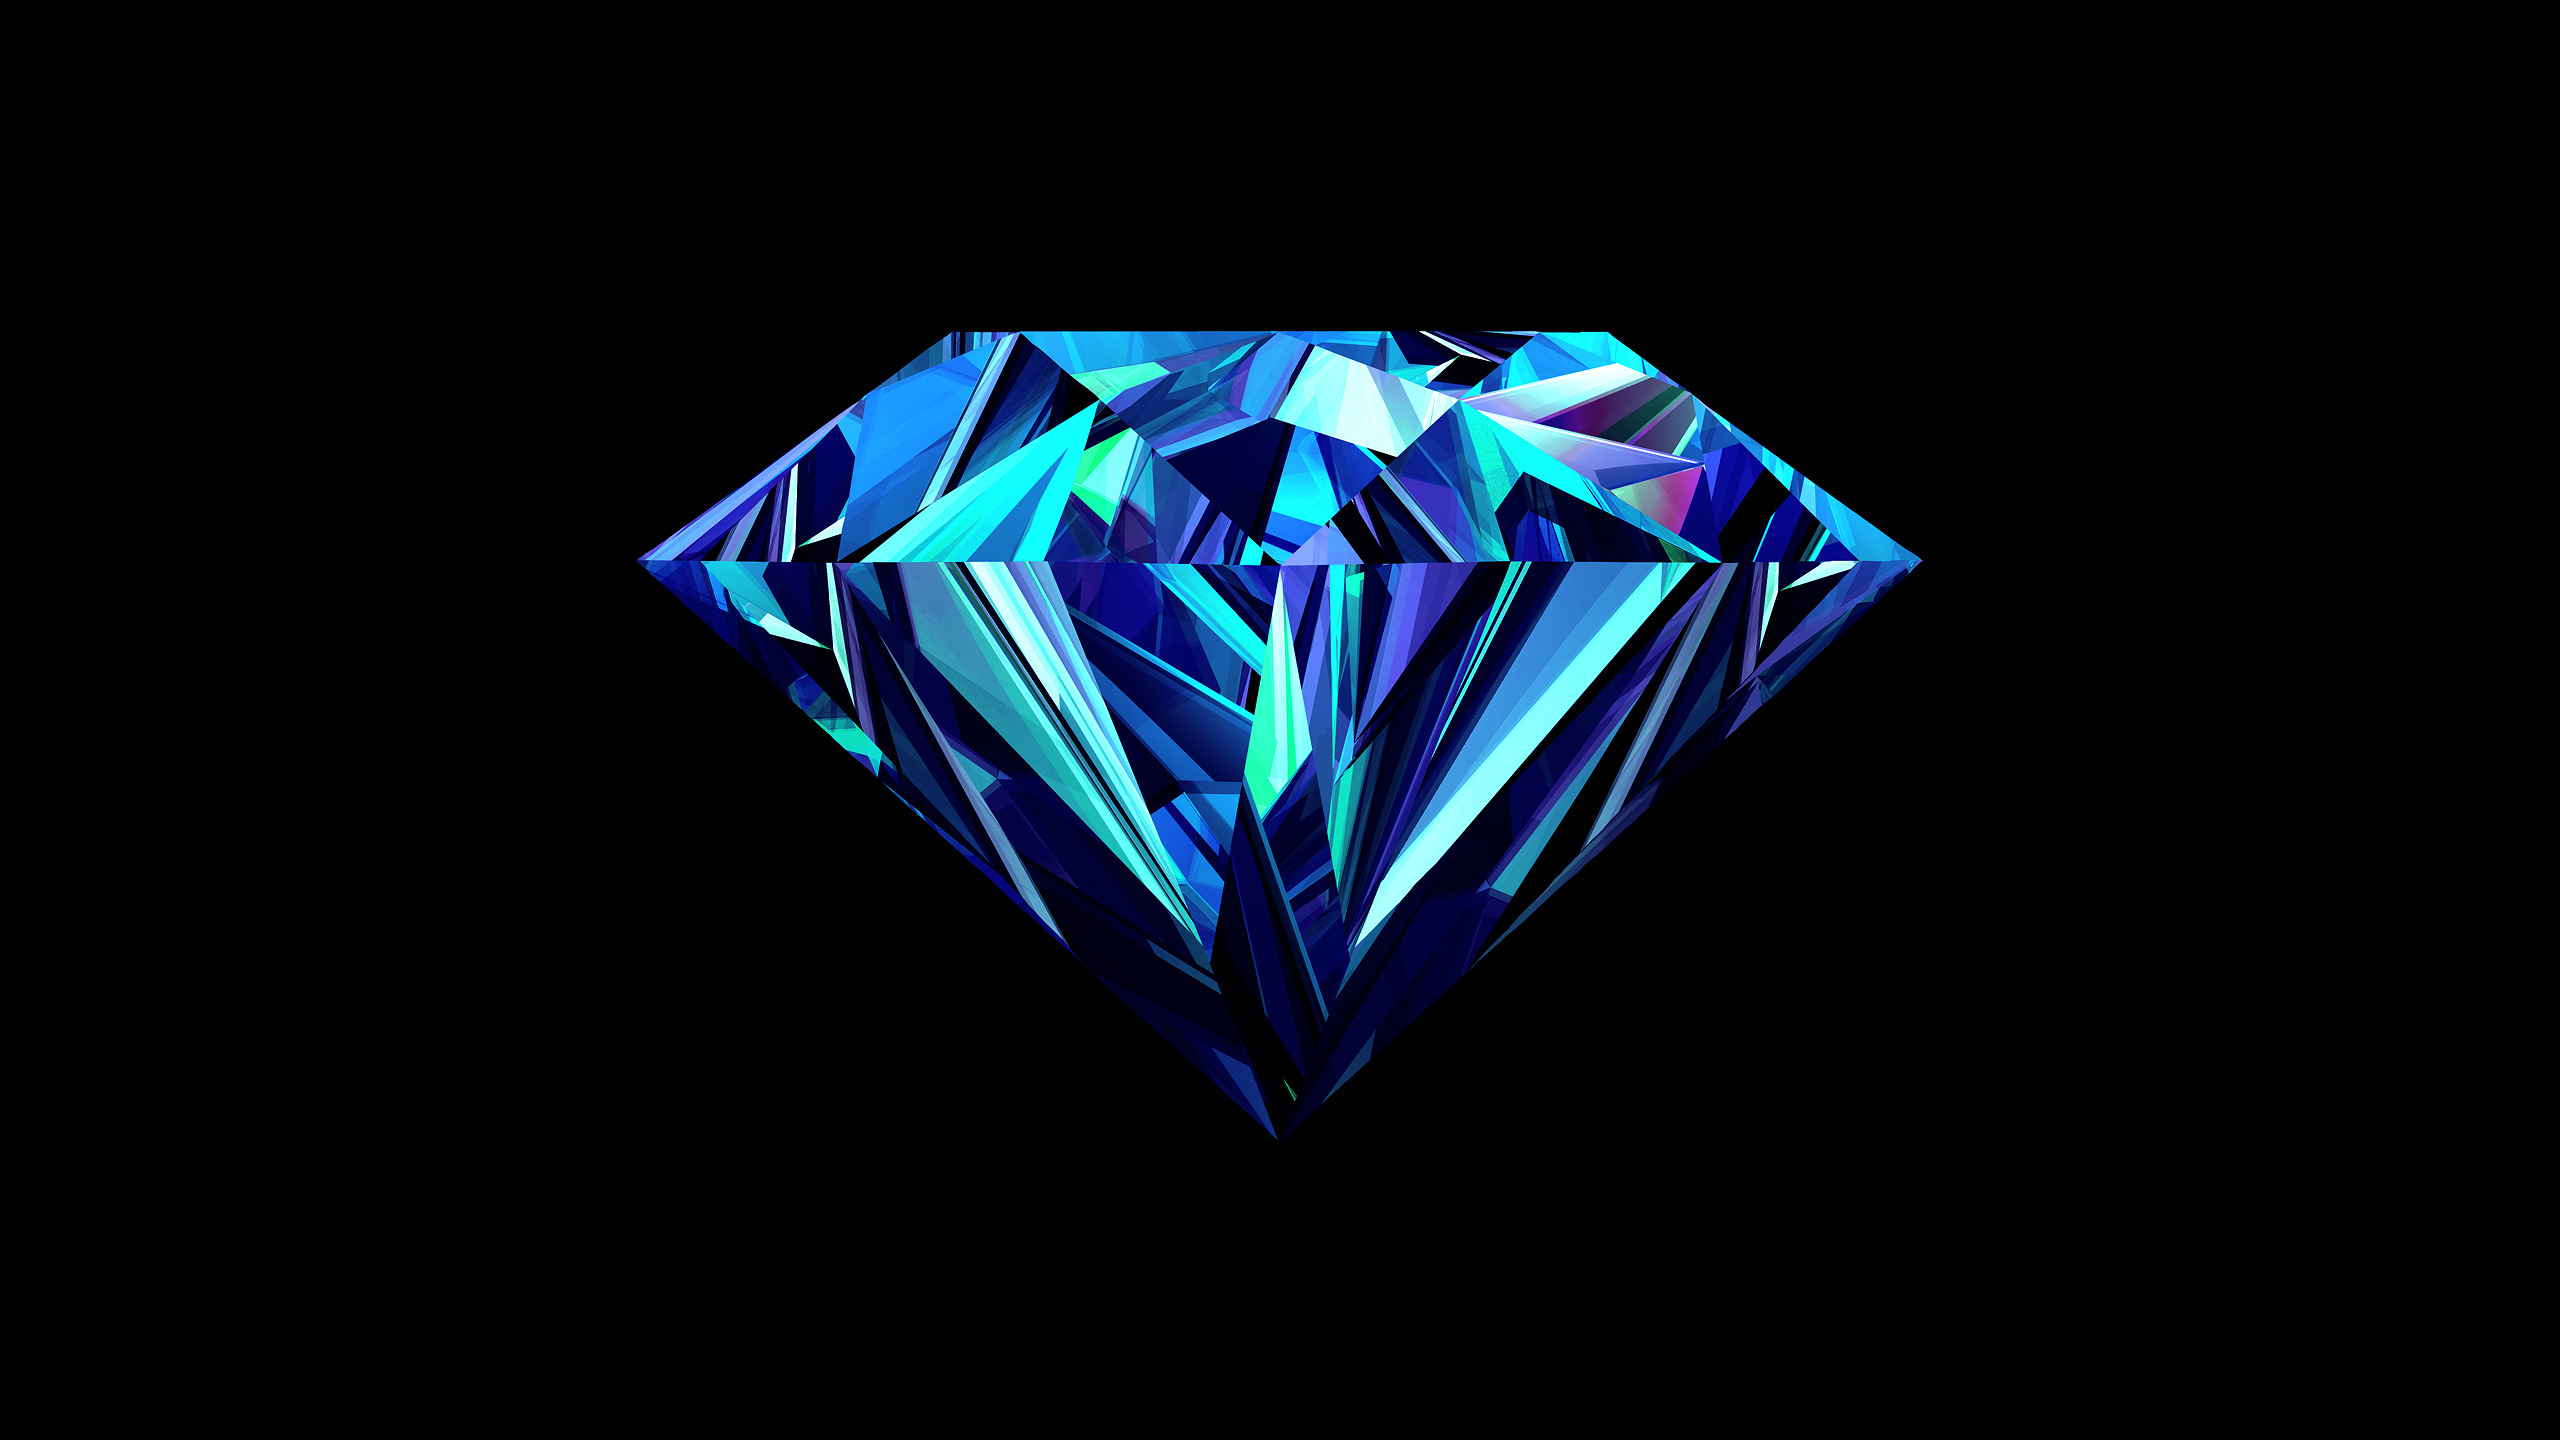 15 outstanding hd diamond wallpapers